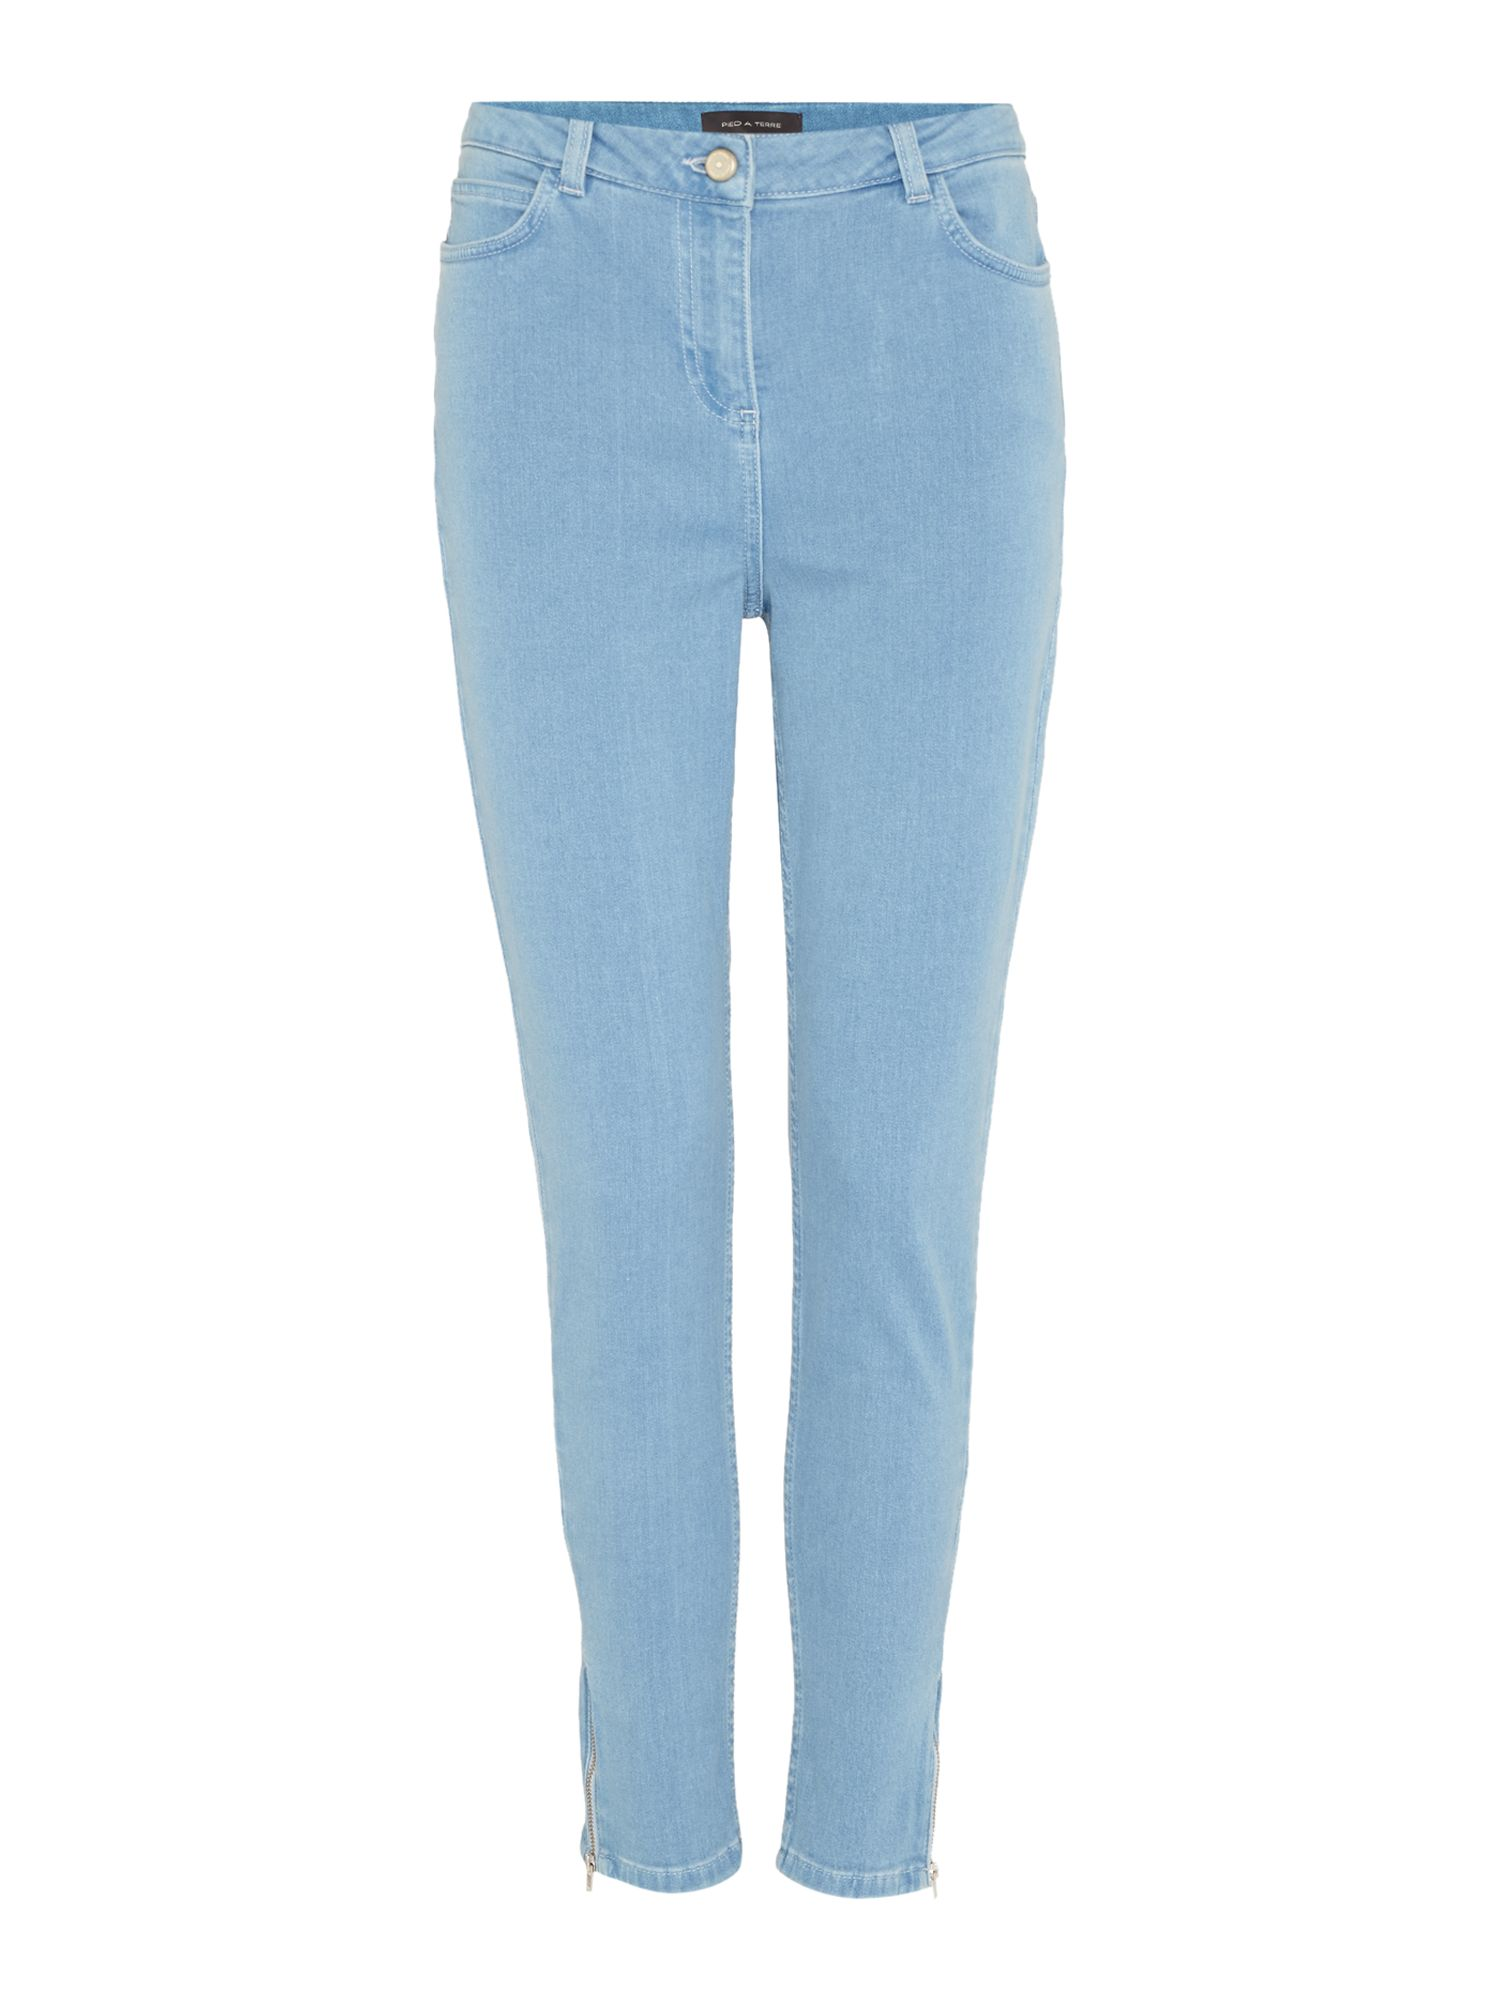 Pied a Terre Pied a Terre Skinny jeans with ankle zip detail, Denim